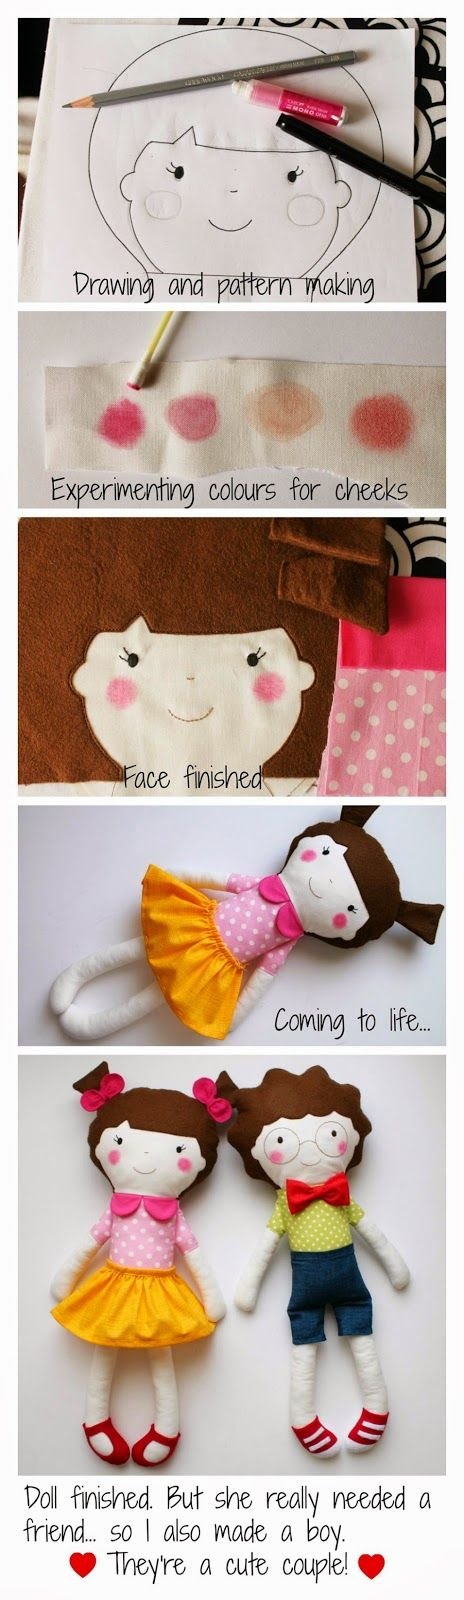 Fabric doll tutorial.